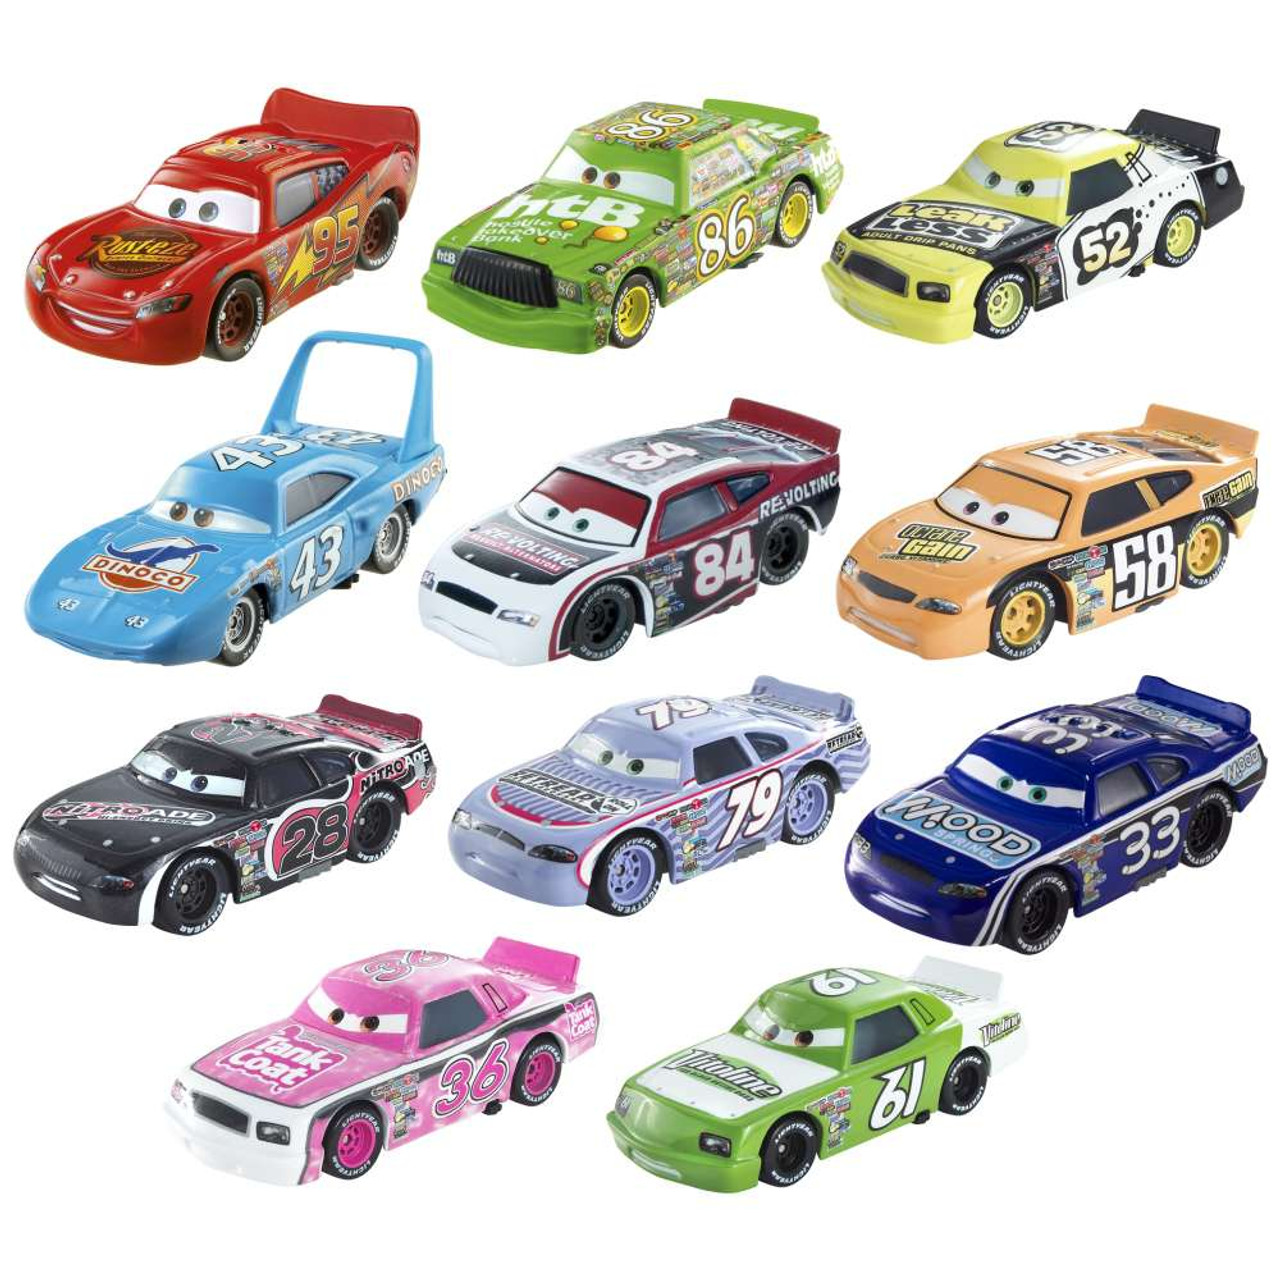 Disney Pixar Cars Piston Cup Collector Pack 155 Diecast Car 11 Pack